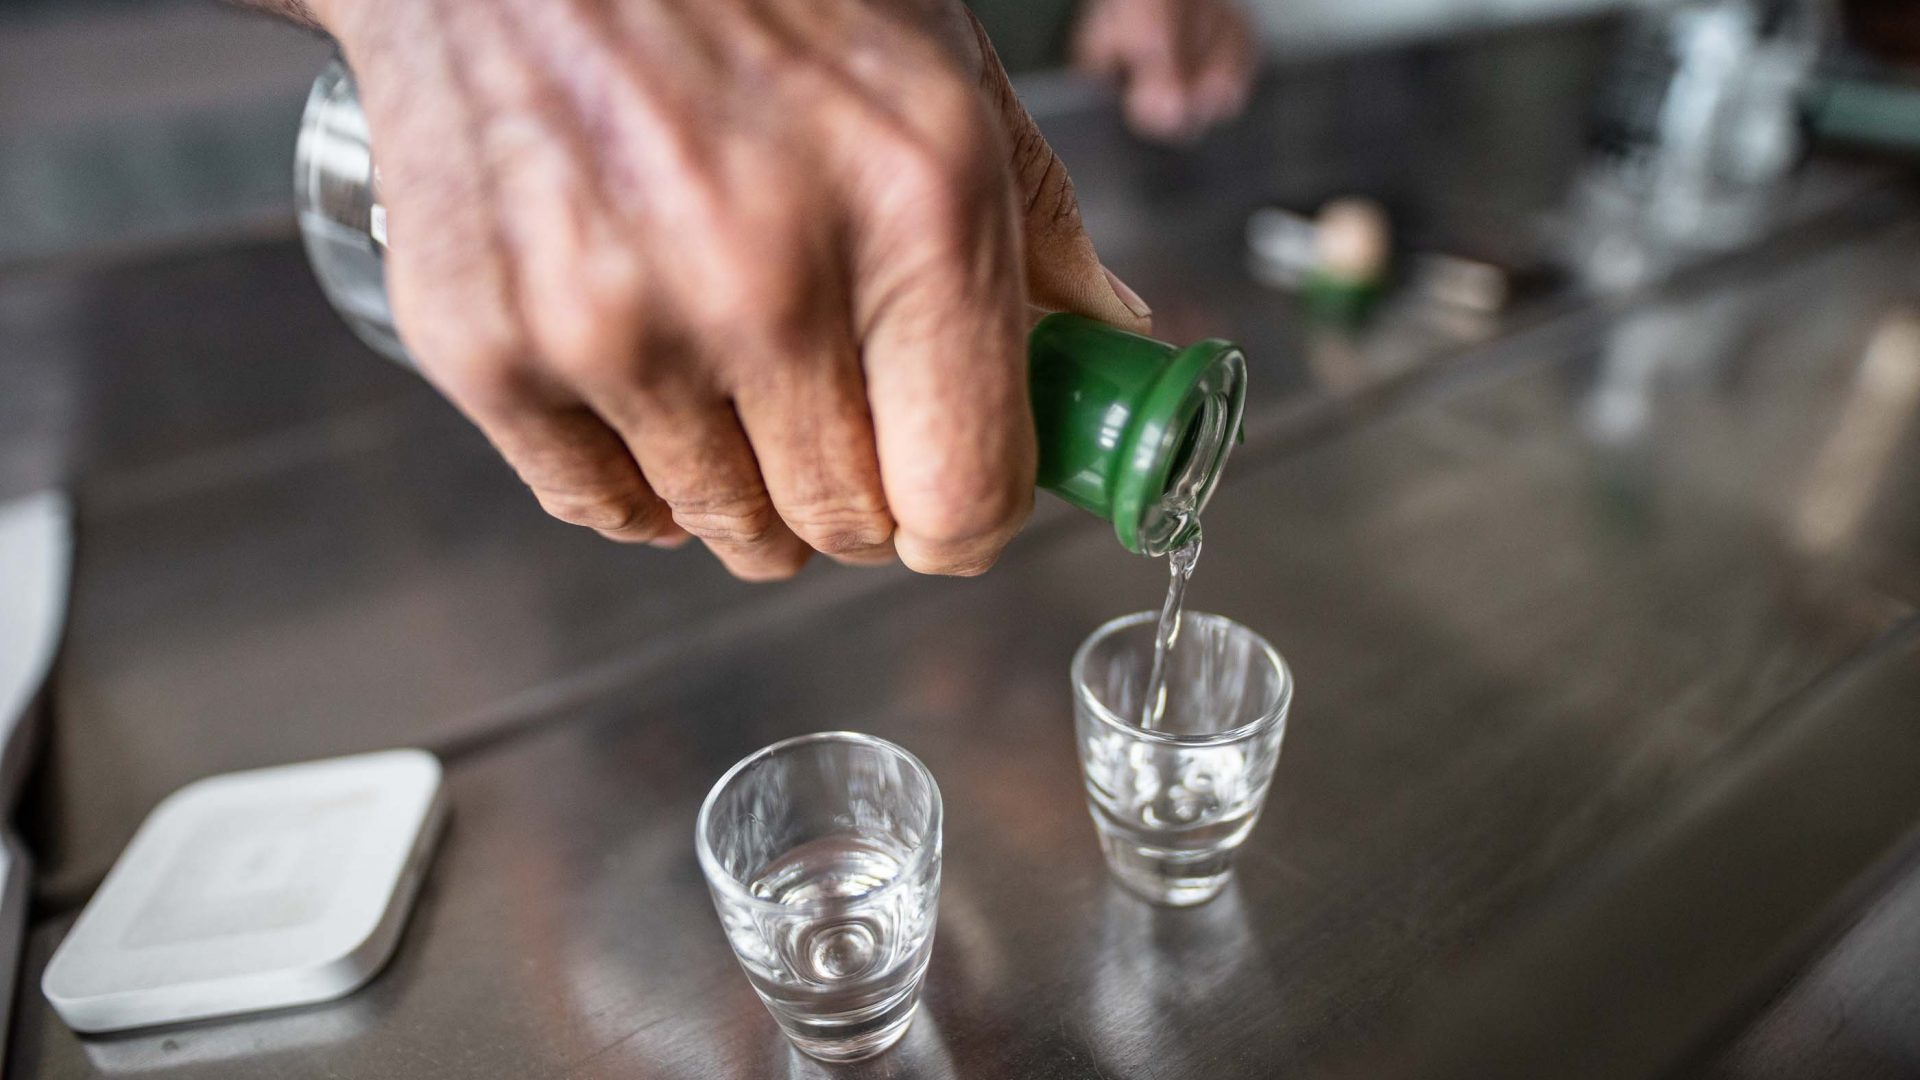 A hand pours a shot of alcohol